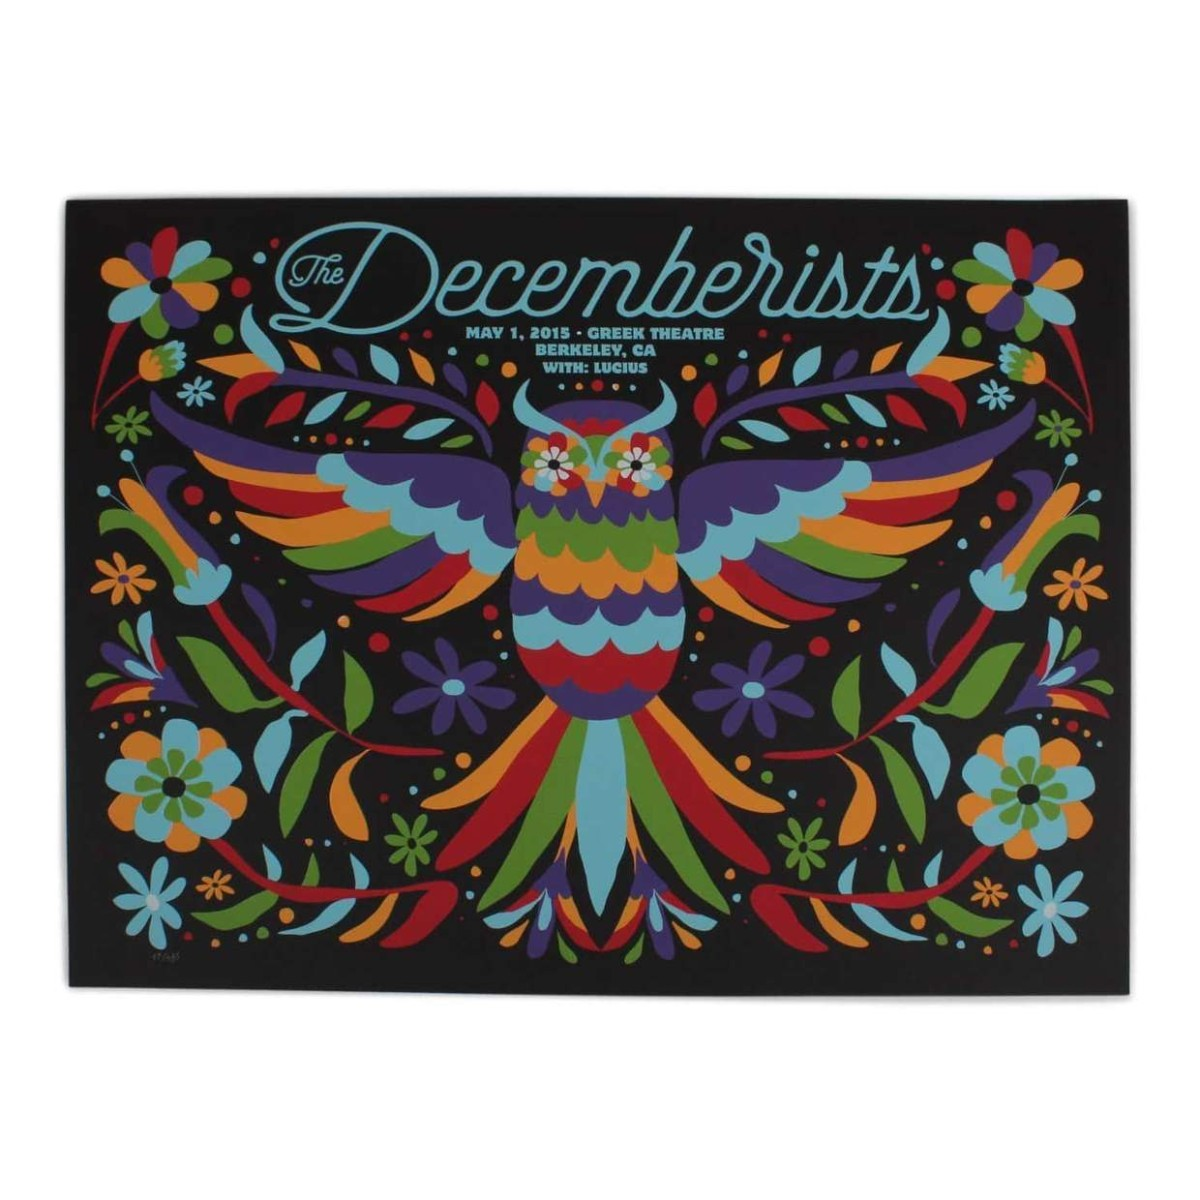 "The Decemberists at The Greek Theatre in Berkley 2015 Poster - 18"" x 24"""